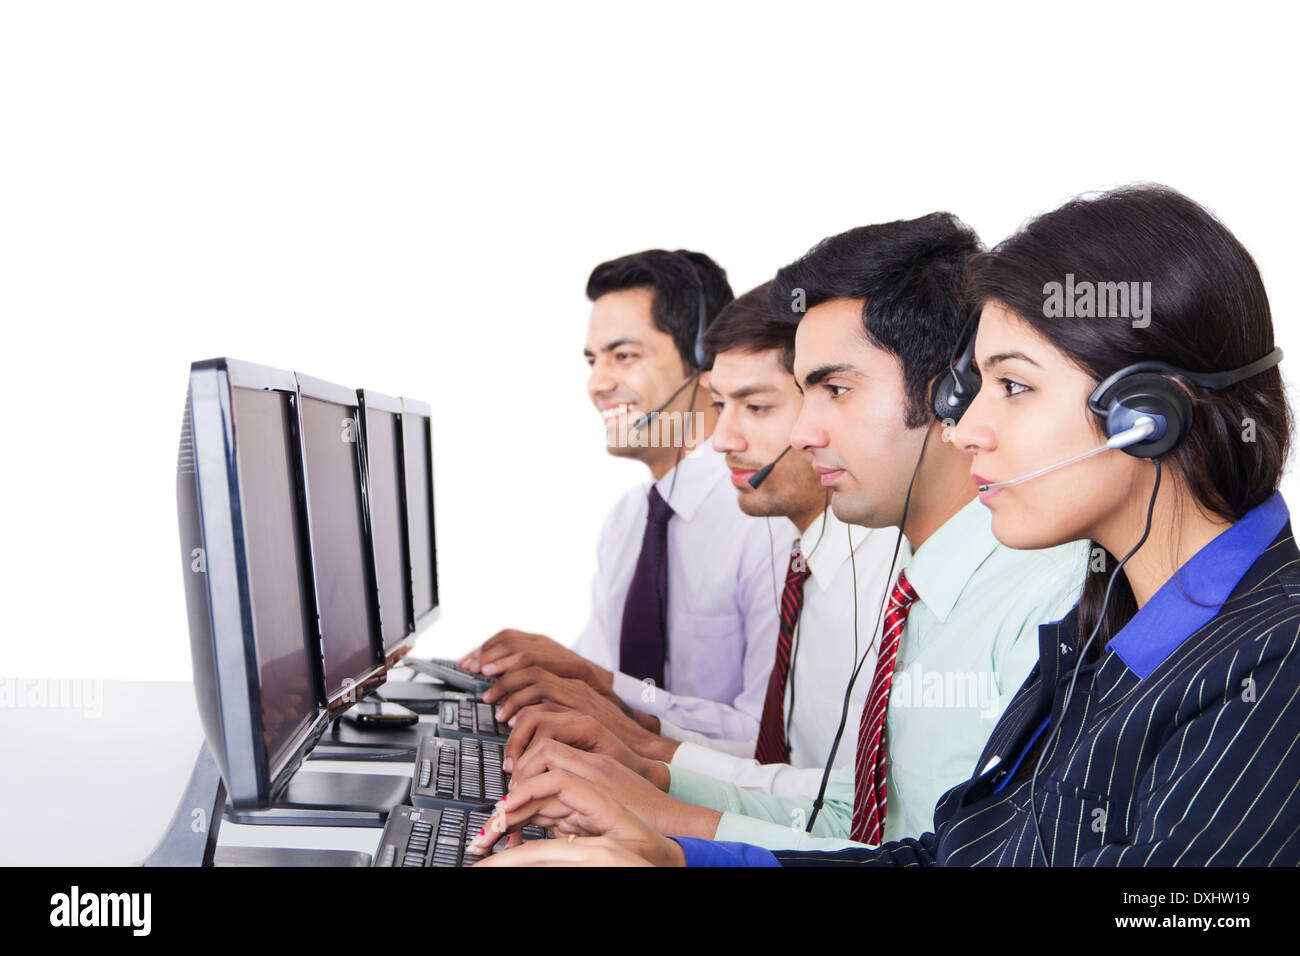 Indian Business People Working in  call centre - Stock Image